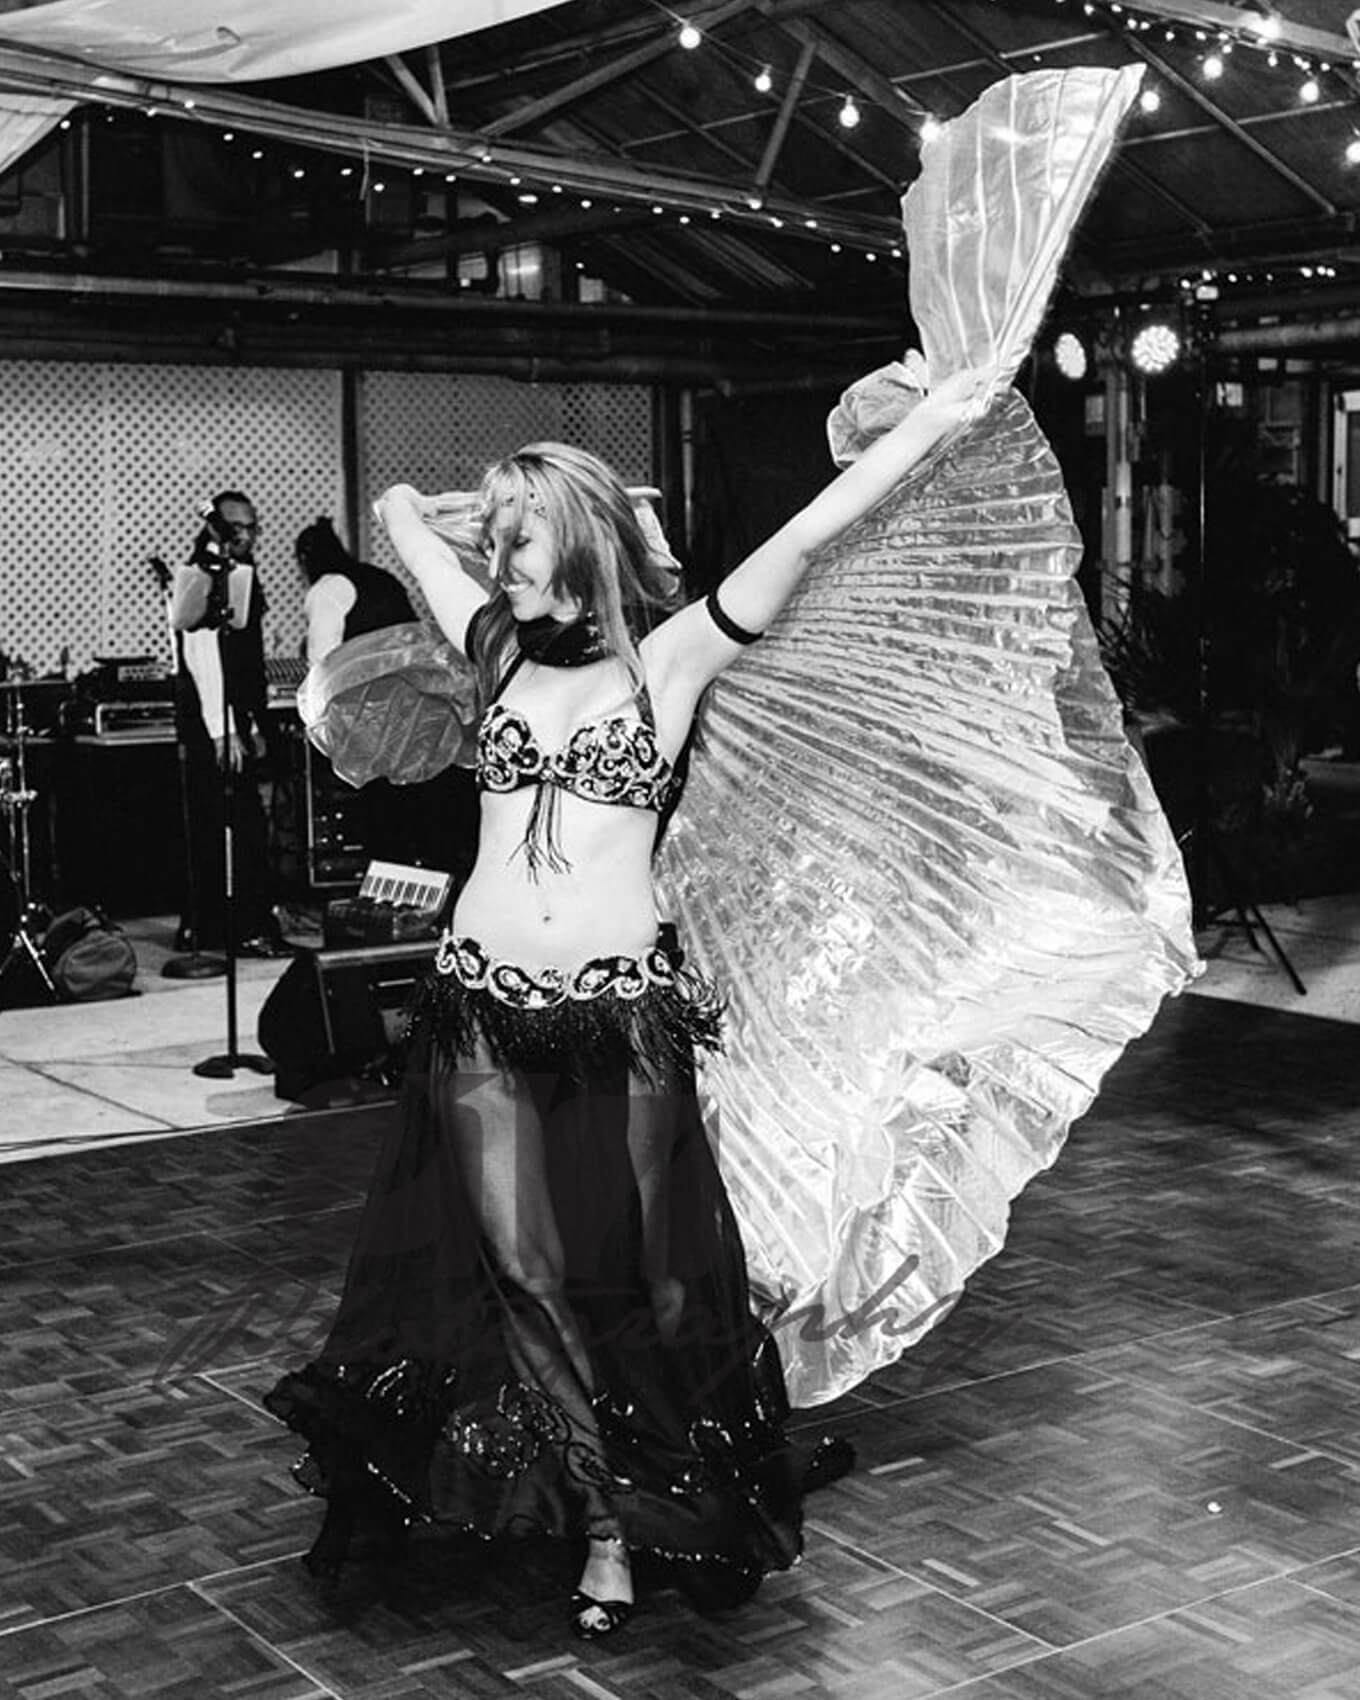 Donna using isis wings at an event